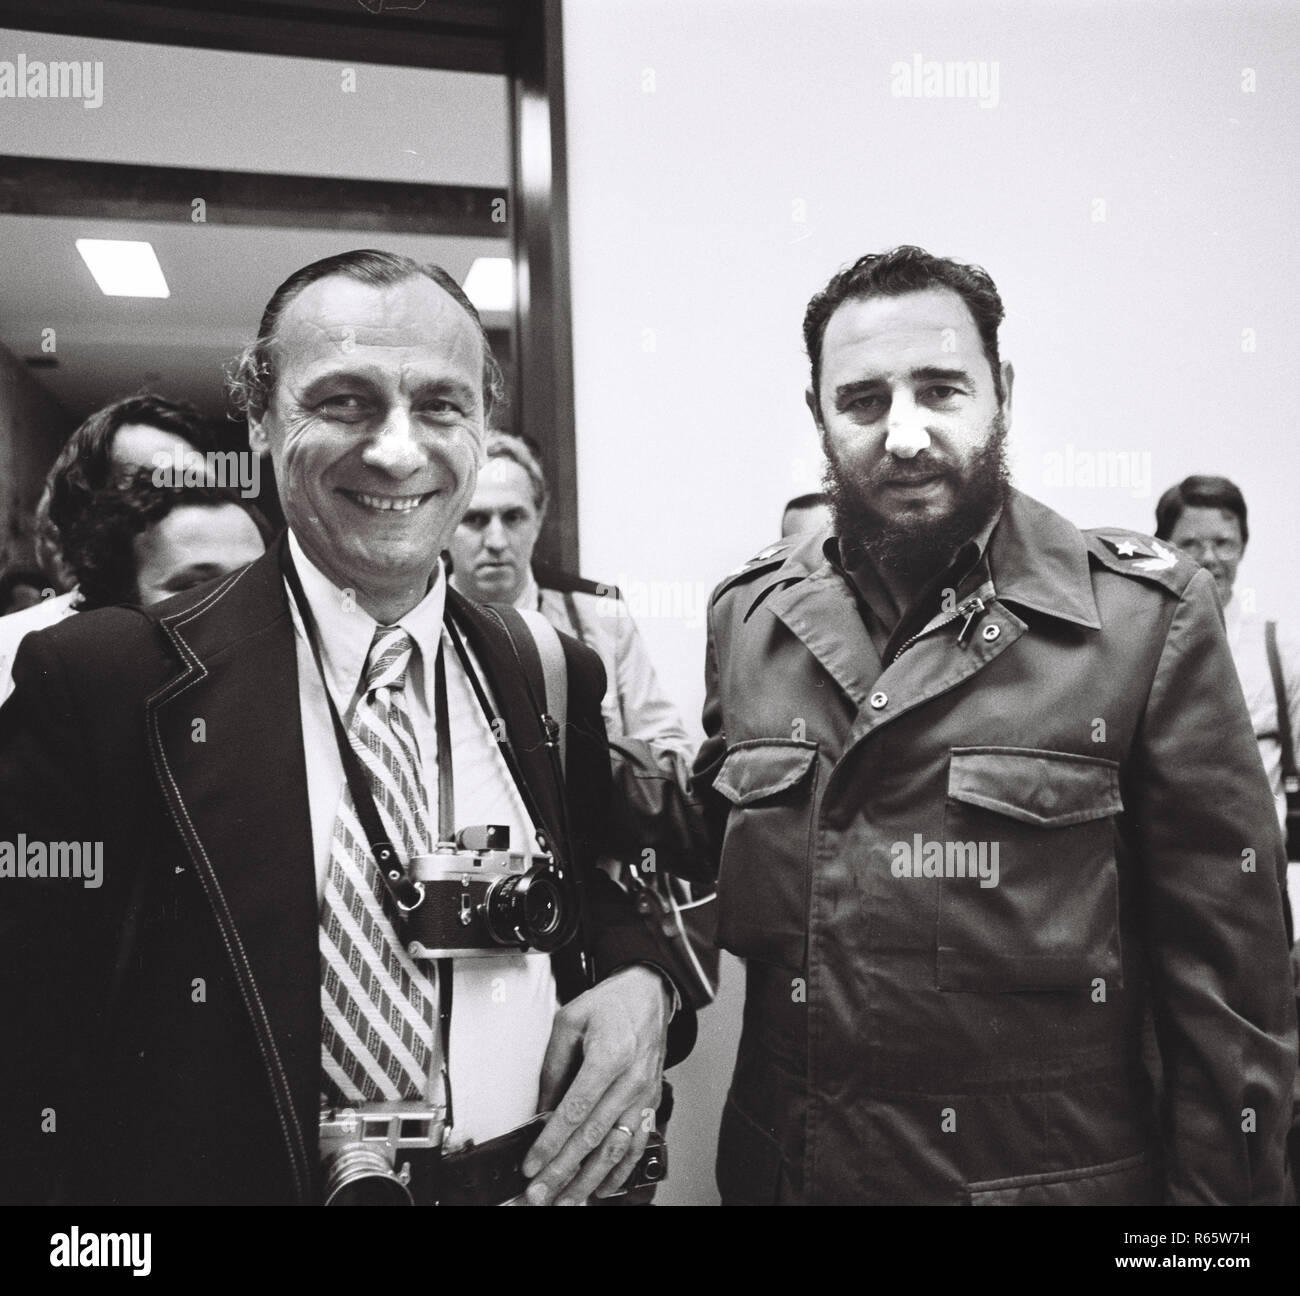 Fidel Castro  and Associated Press Photographer Charles Tasnadi in Cuba on June 19, 1975 - Stock Image